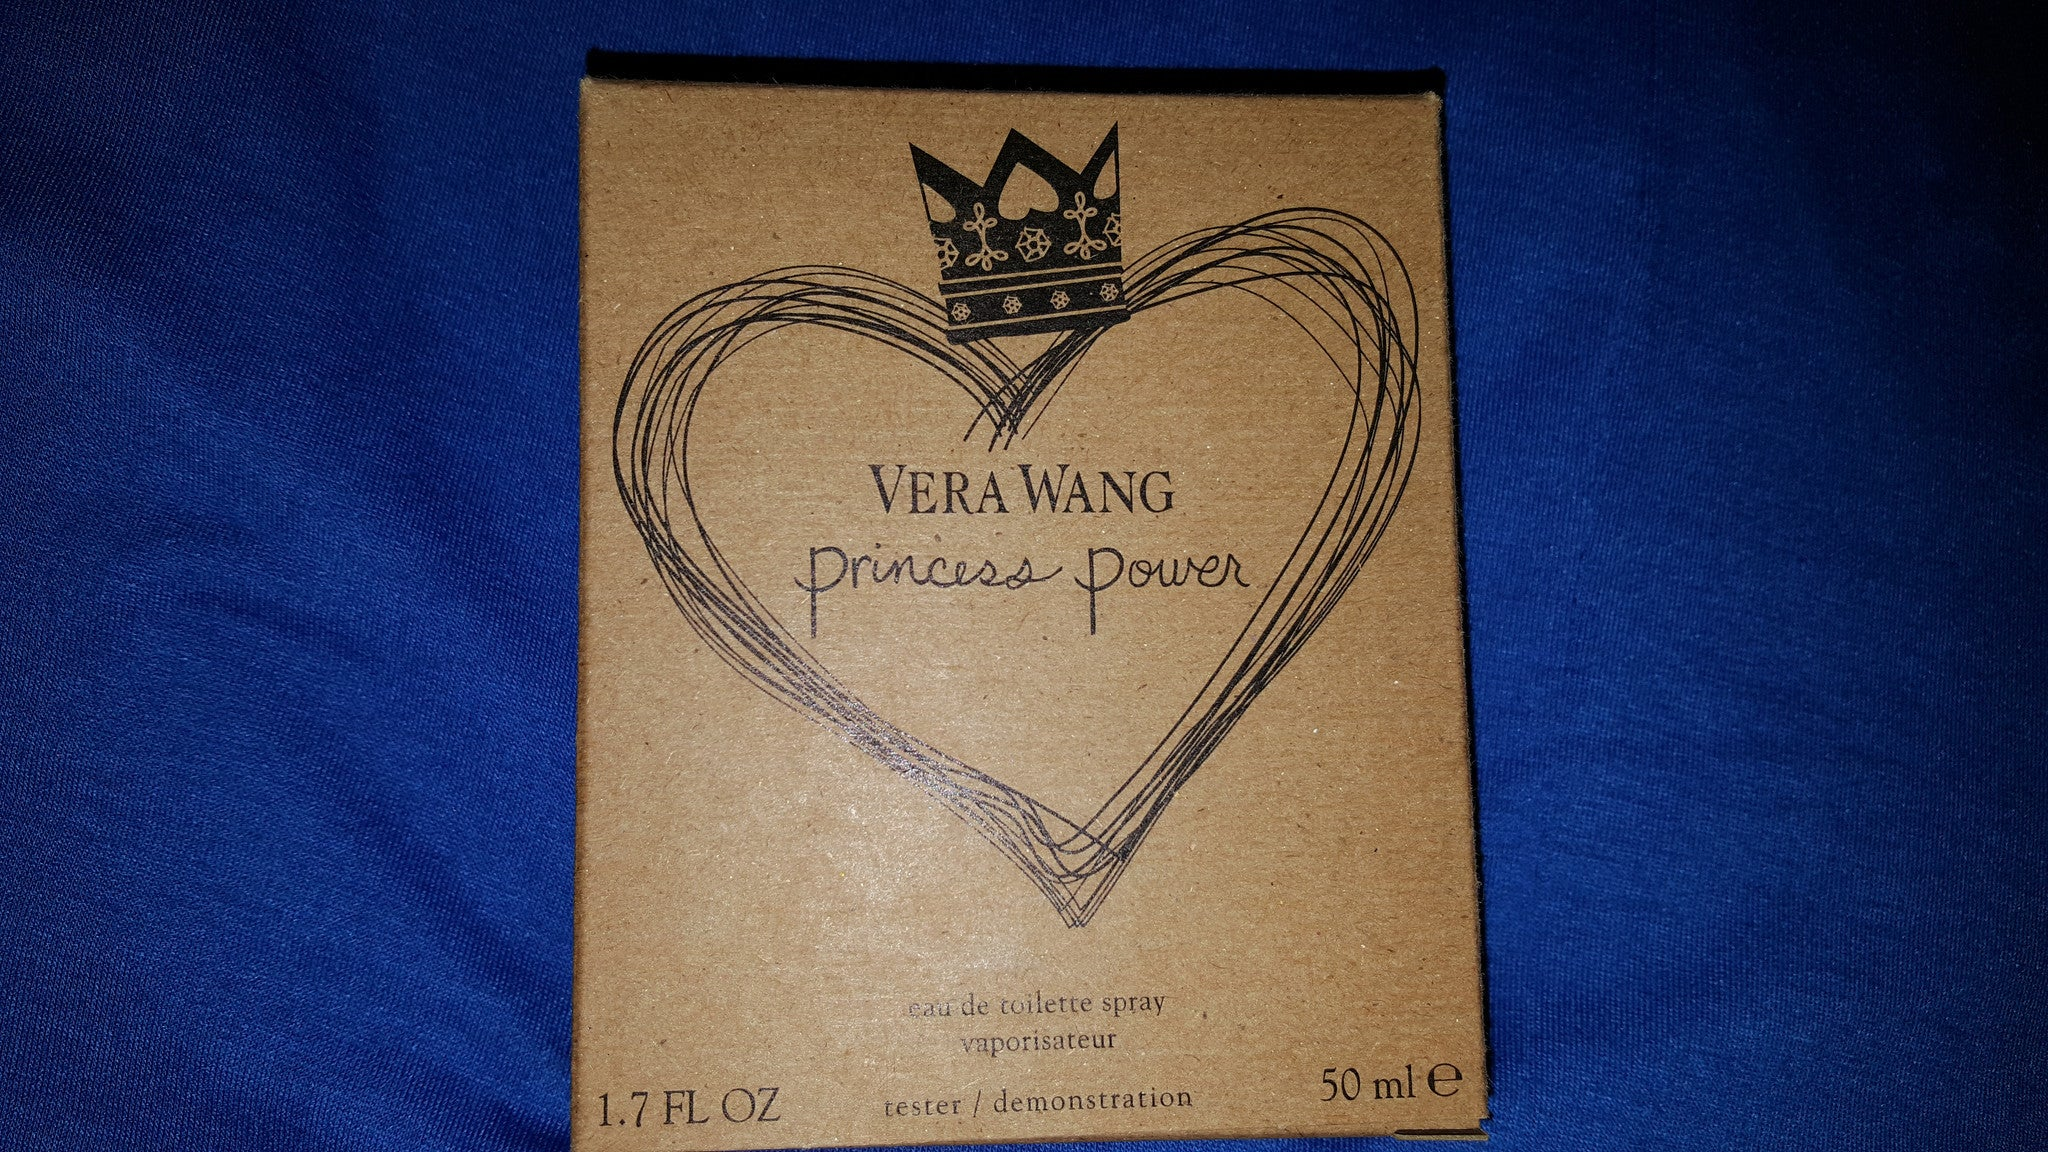 Vera Wang - Princess Power -  New Fashion Finds By Carole